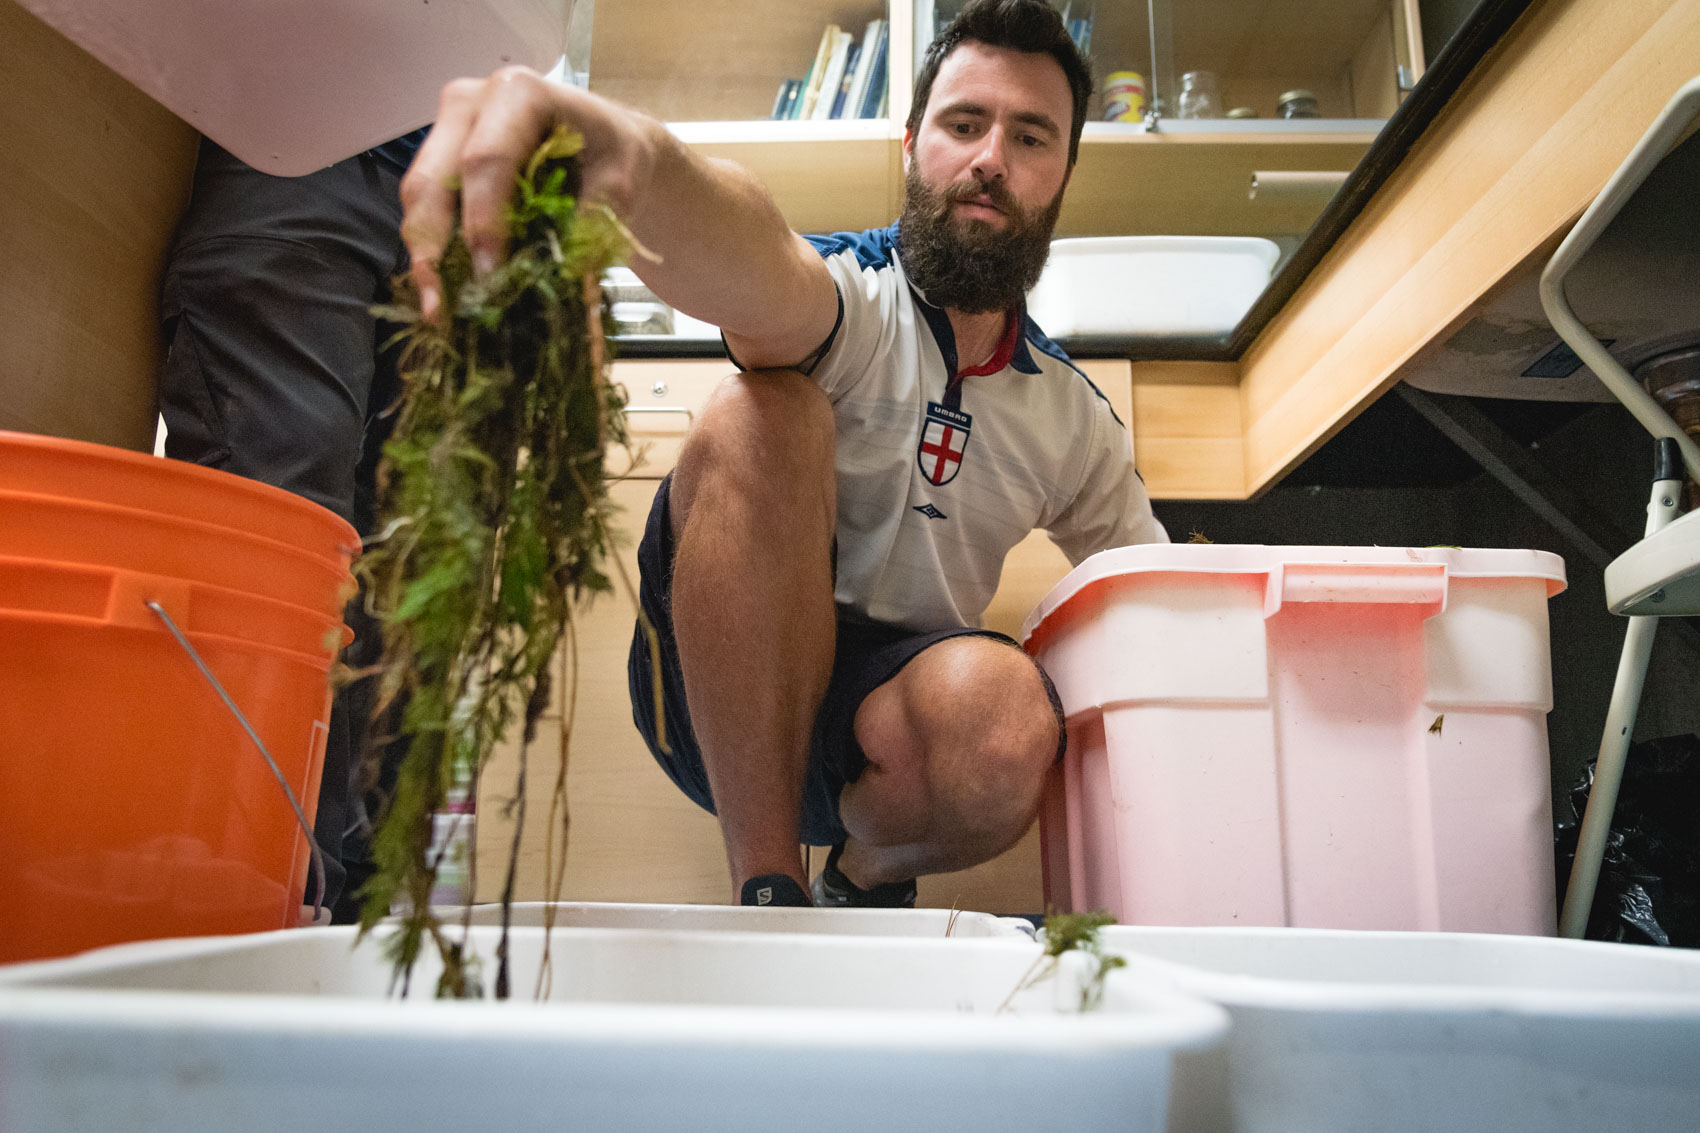 A research assistant puts moss and seaweeds into a plastic tub at Upper Thames River Conservation Authority